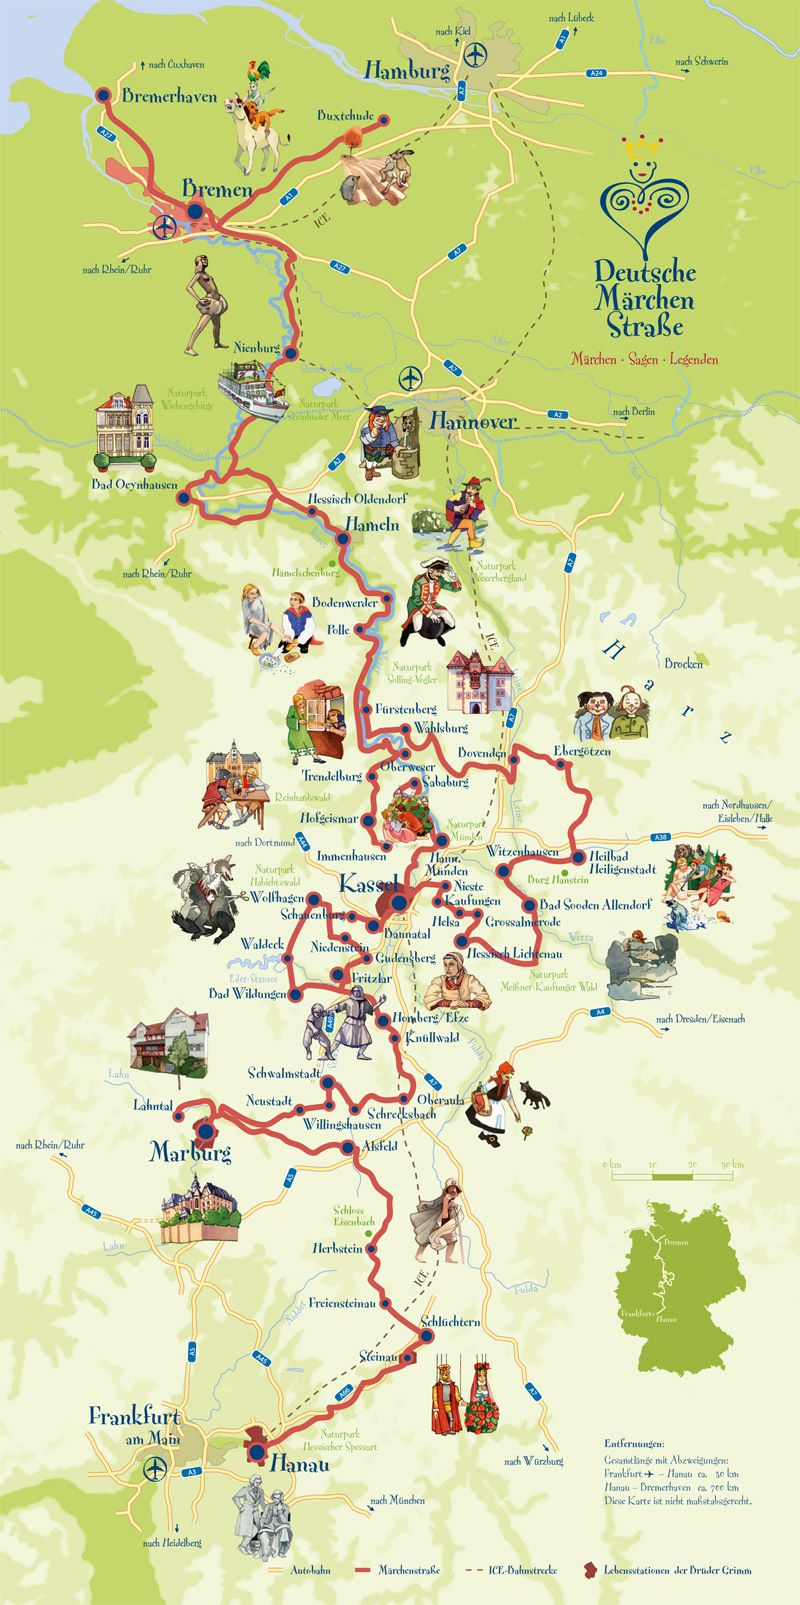 grimm brothers fairy tales route map next years summer holiday